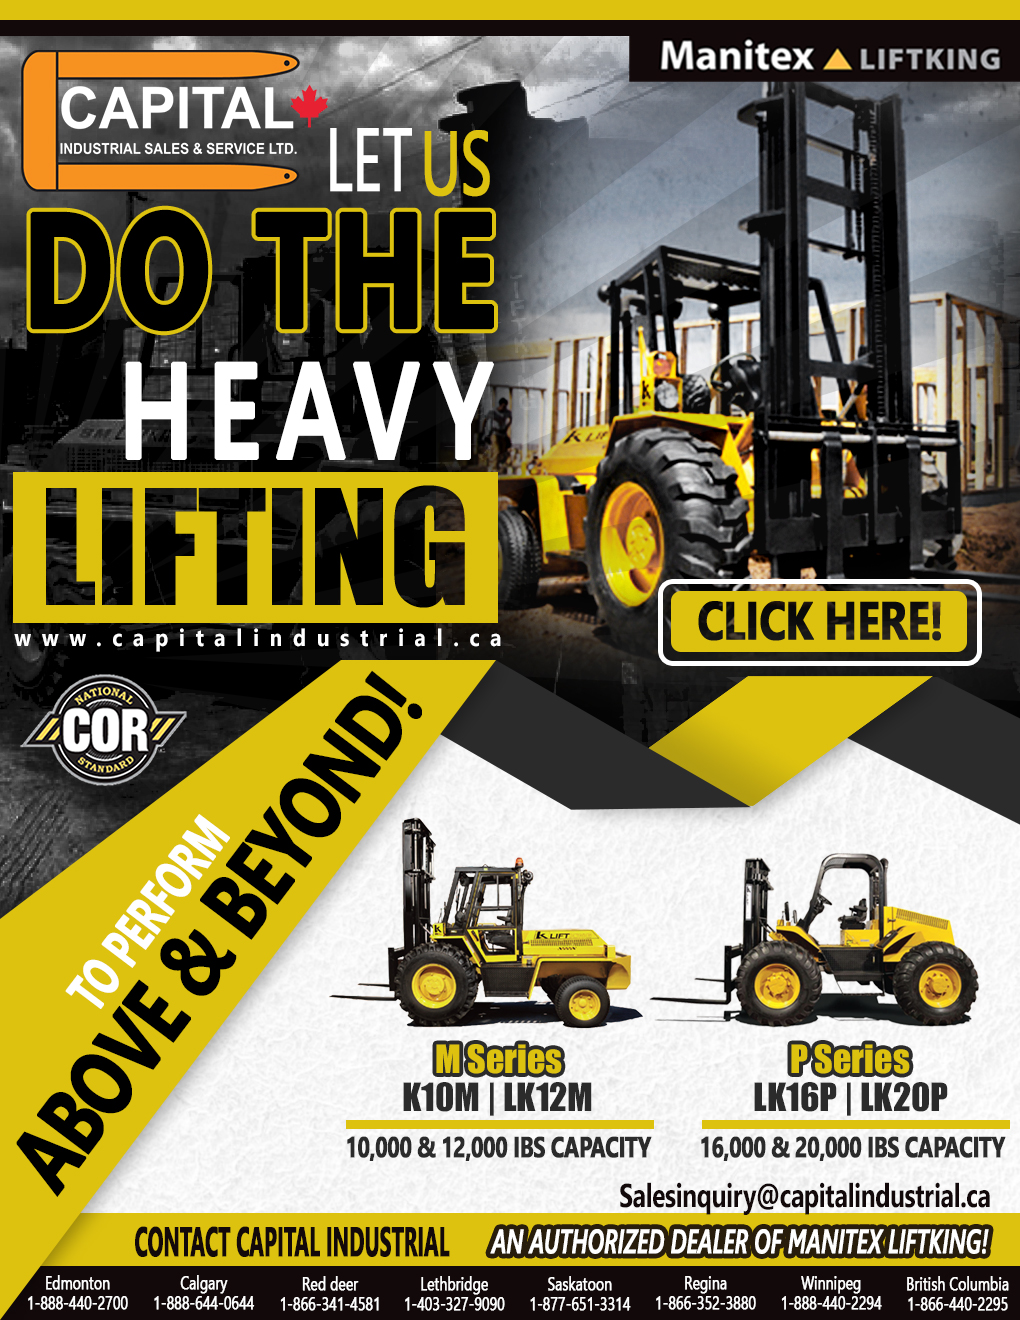 Get Your Manitex Liftking Today!